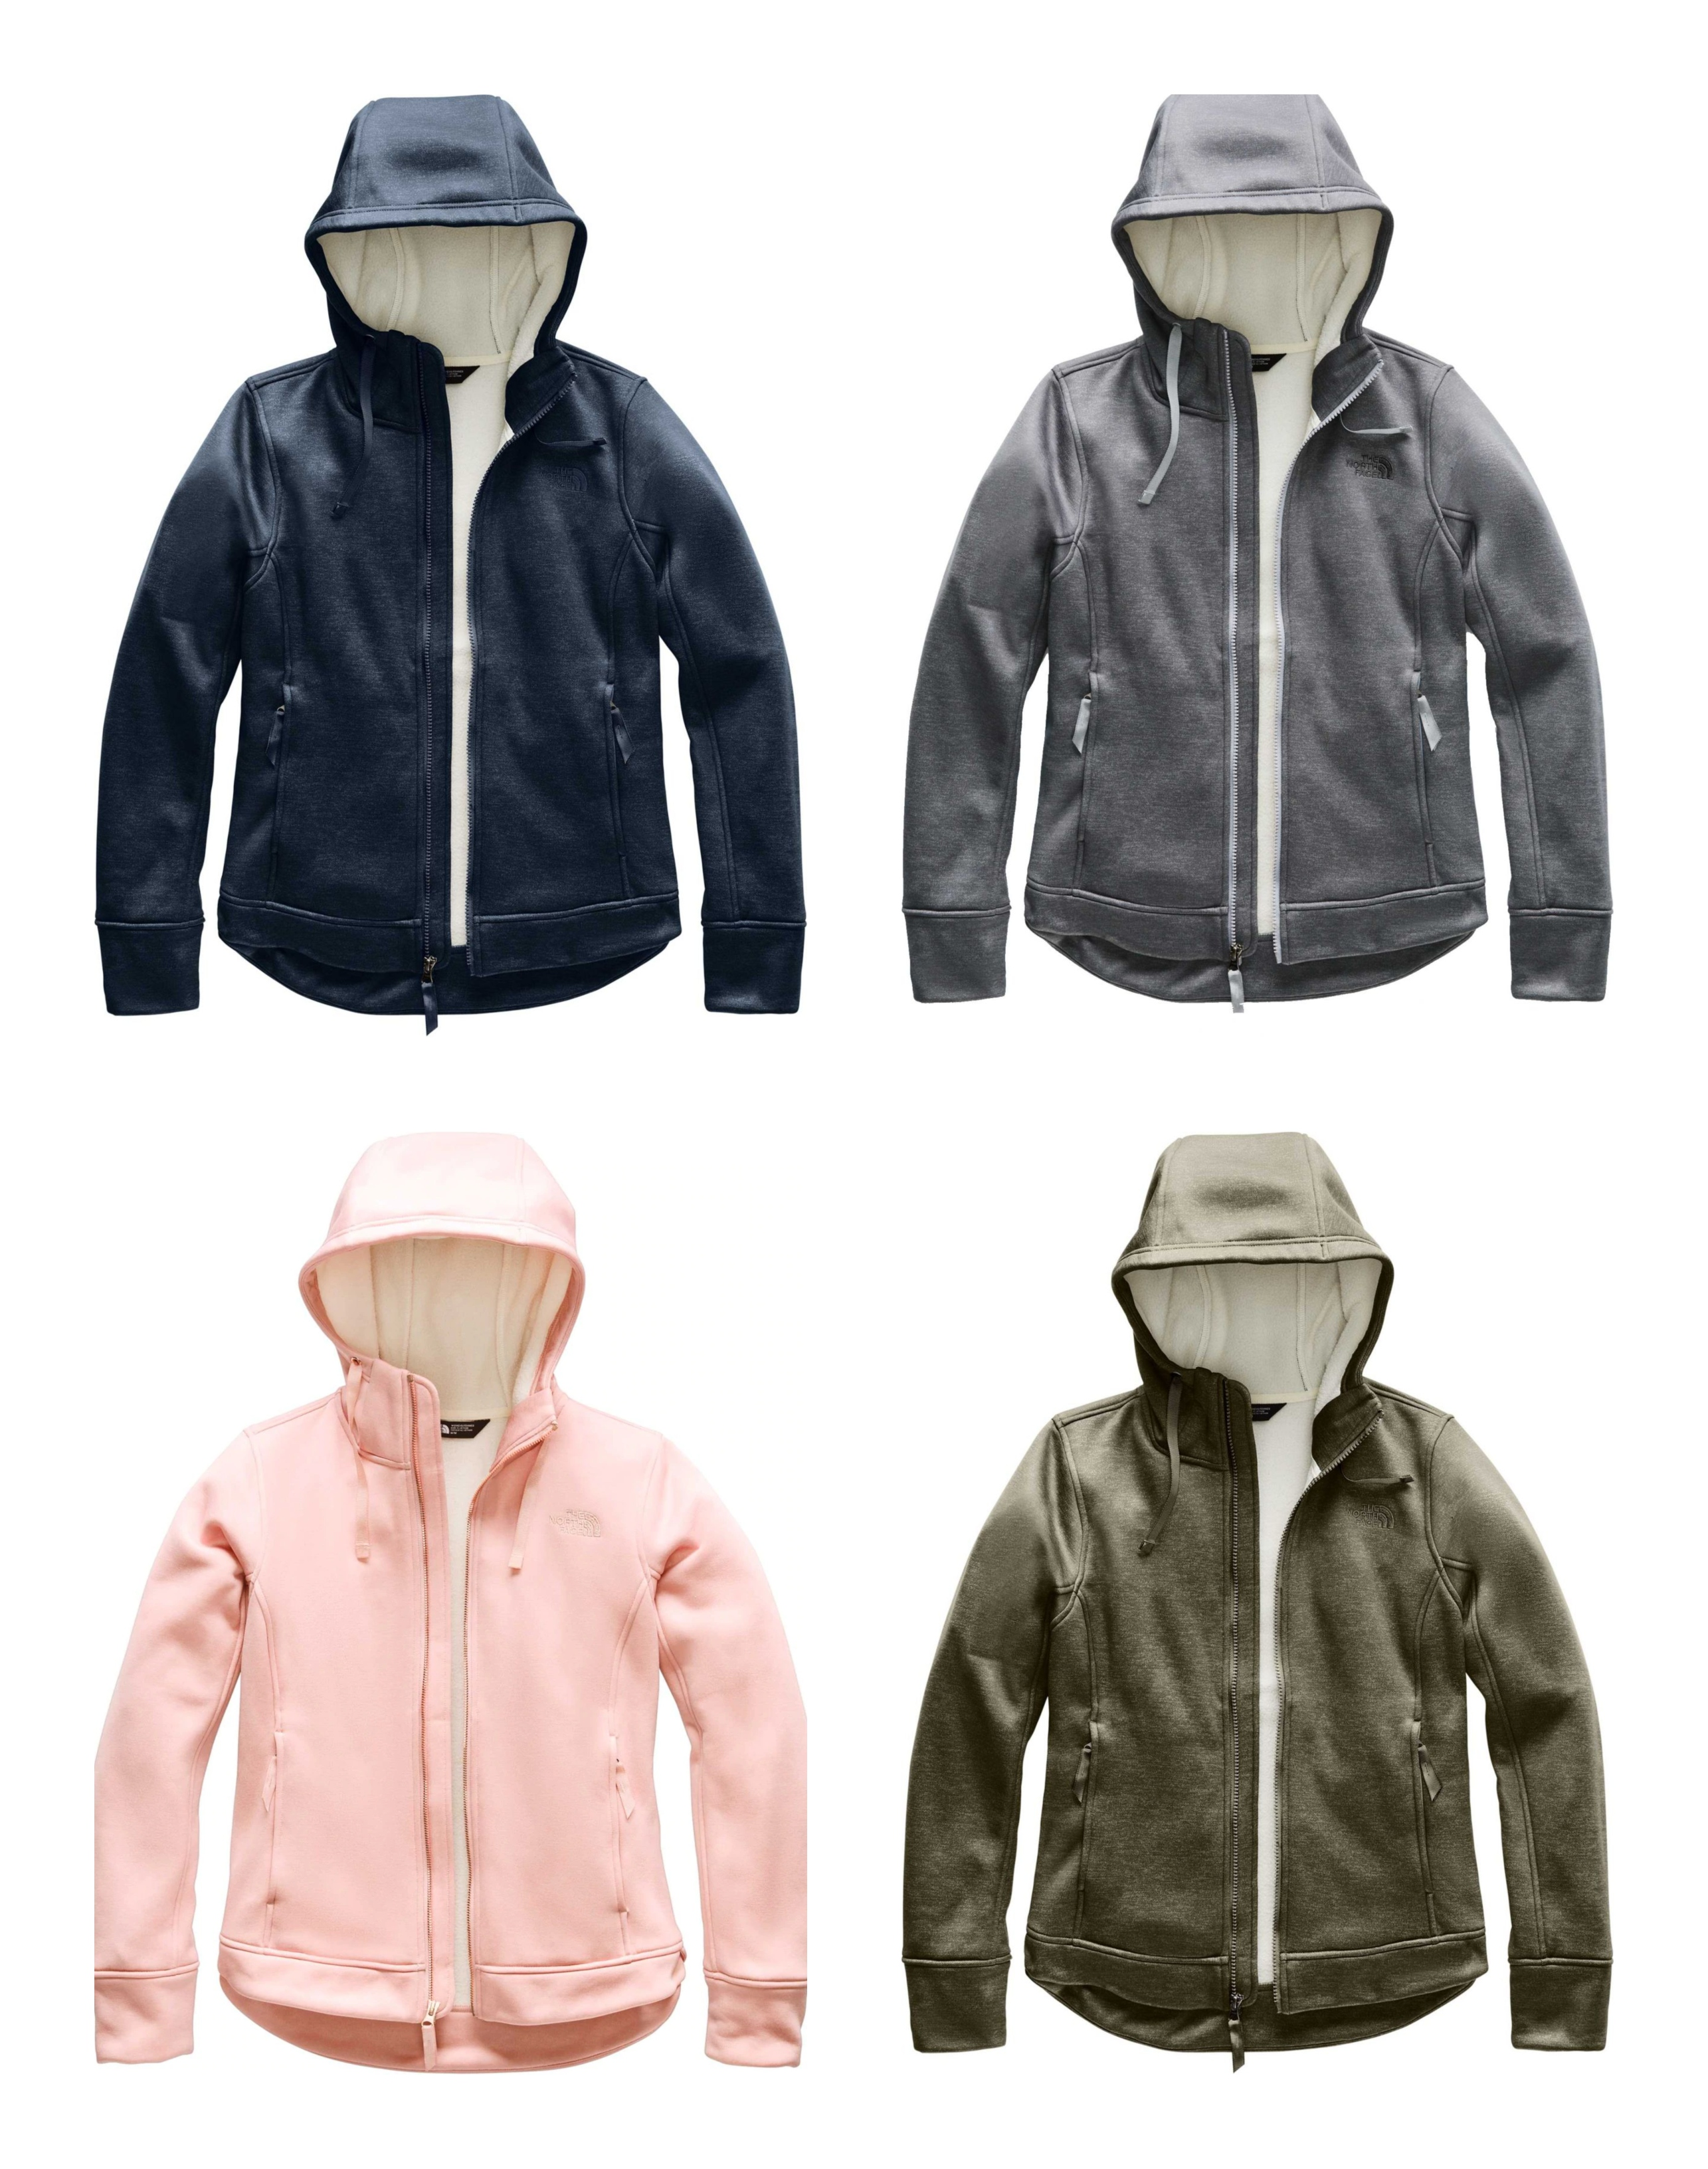 109a73018 Dick's Sporting Goods: The North Face Full-Zip Fleece Hoodies only ...